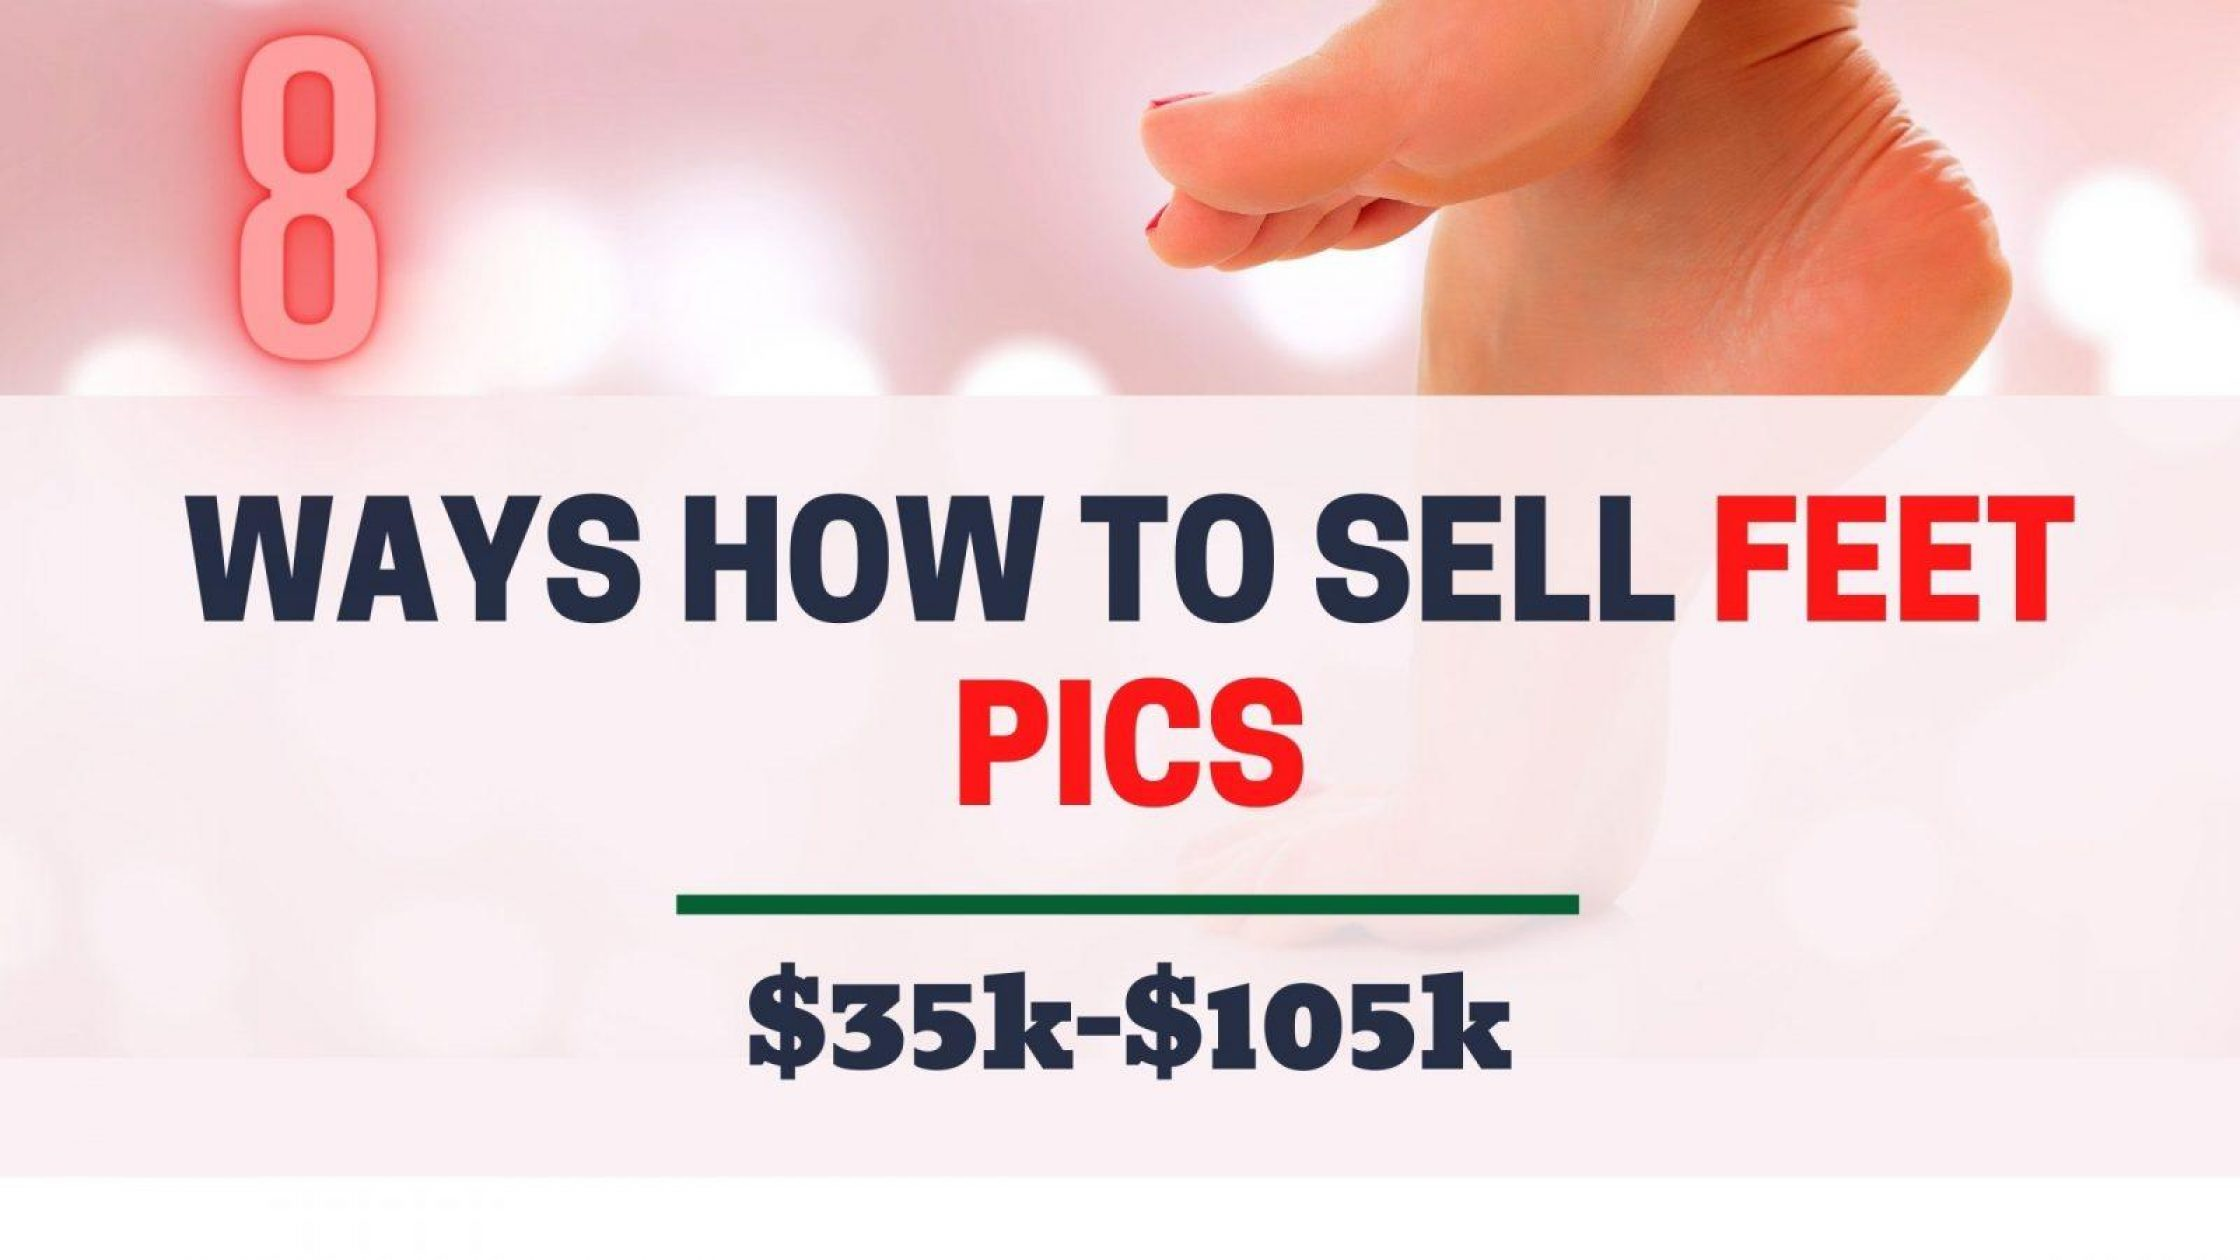 8 Ways How To Sell Feet Pics $7k [HIRING NOW]